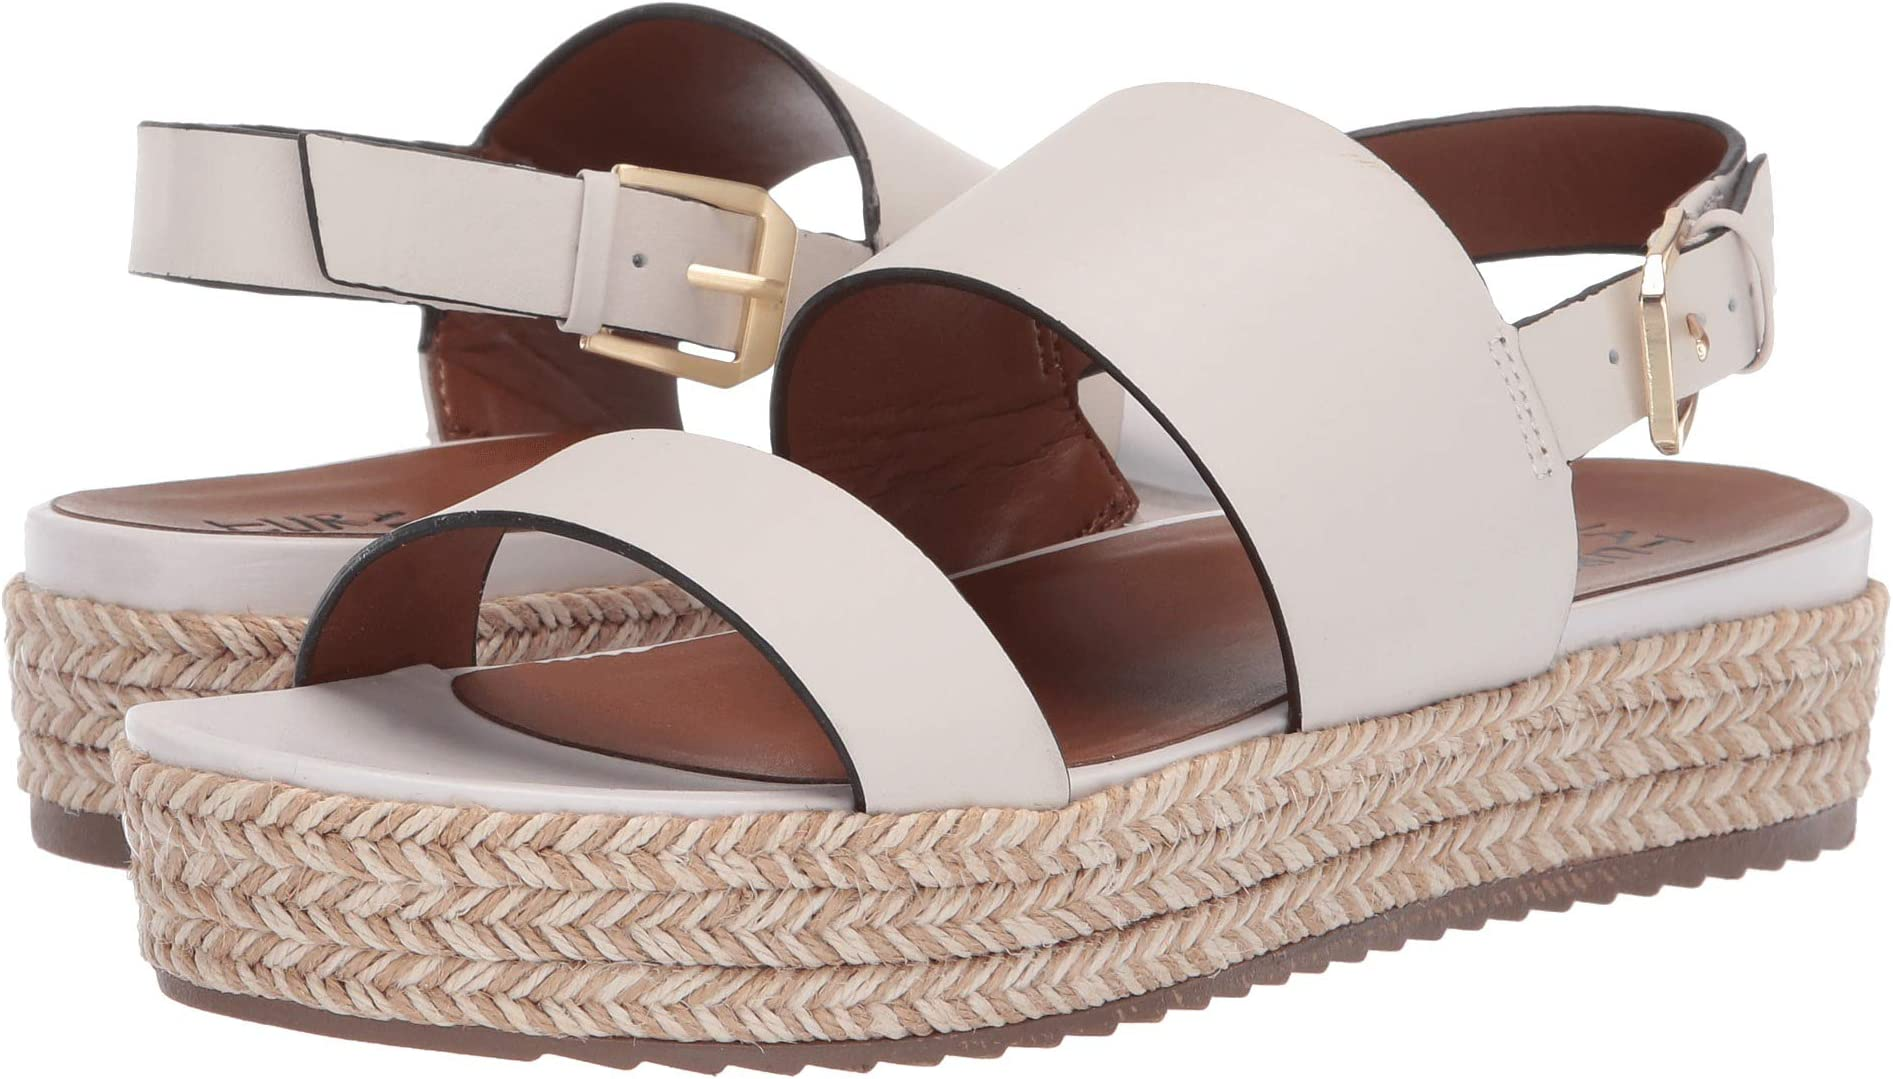 478ab0979495 Naturalizer Sandals